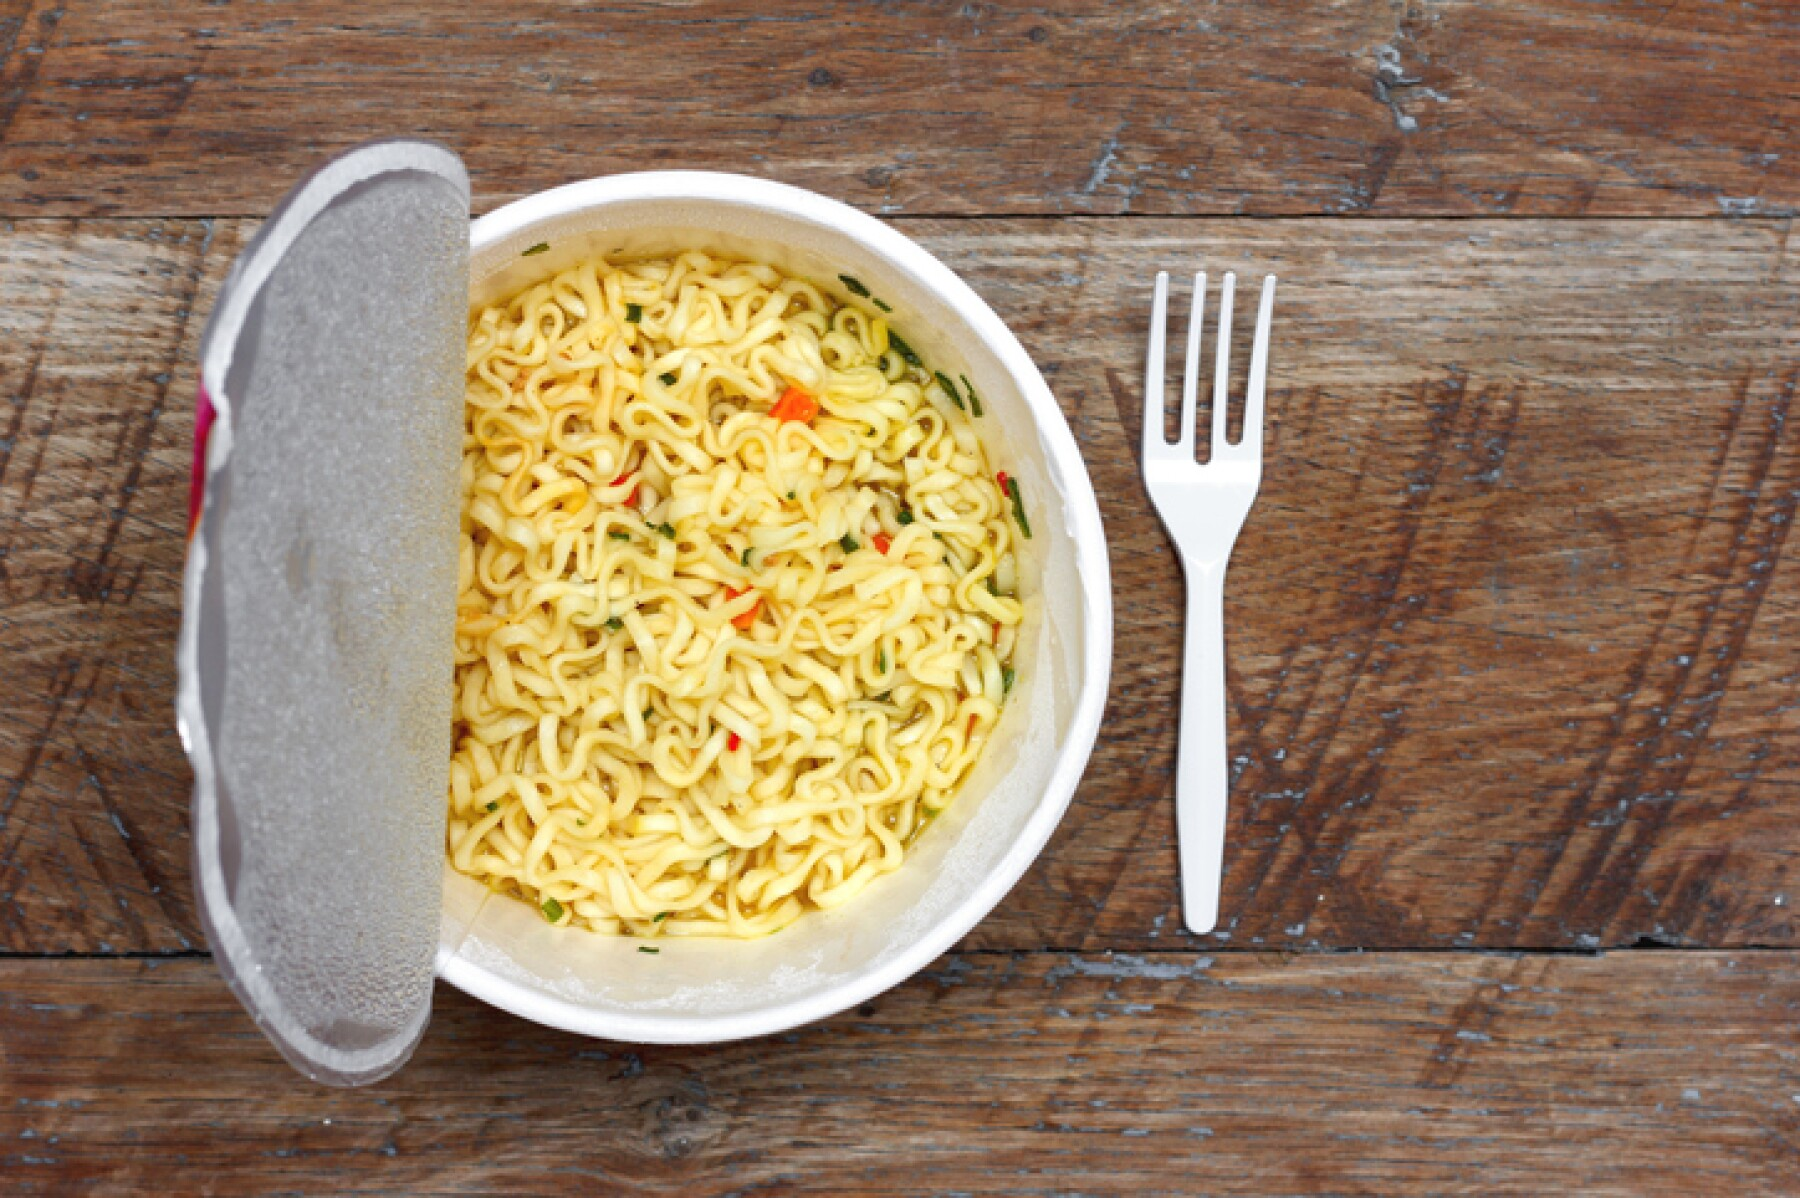 instant noodles on wooden background, top view close-up